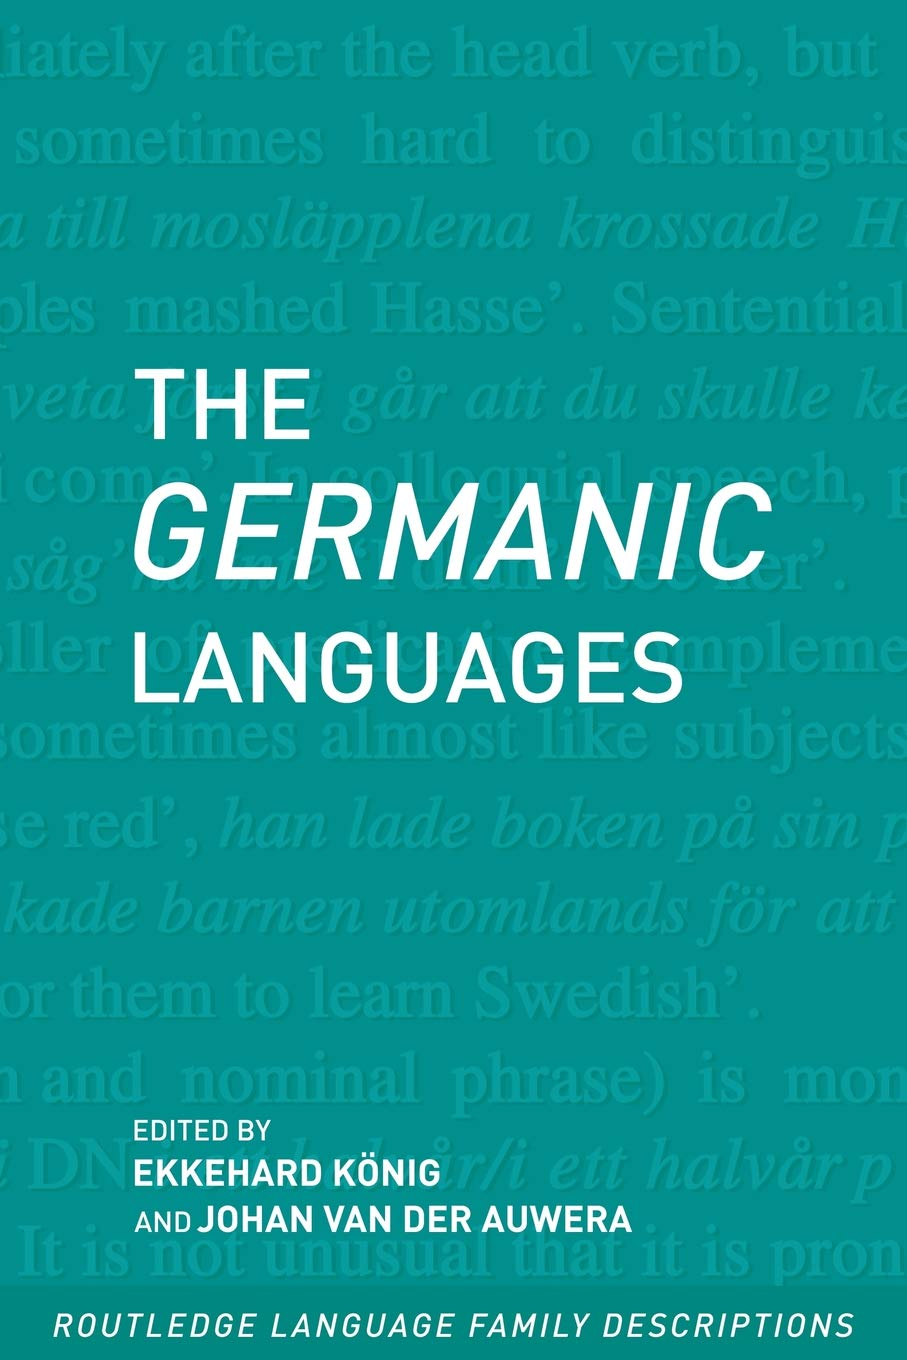 The Germanic Languages (Routledge Language Family Series): Amazon.co.uk:  Ekkehard Konig: 9780415280792: Books